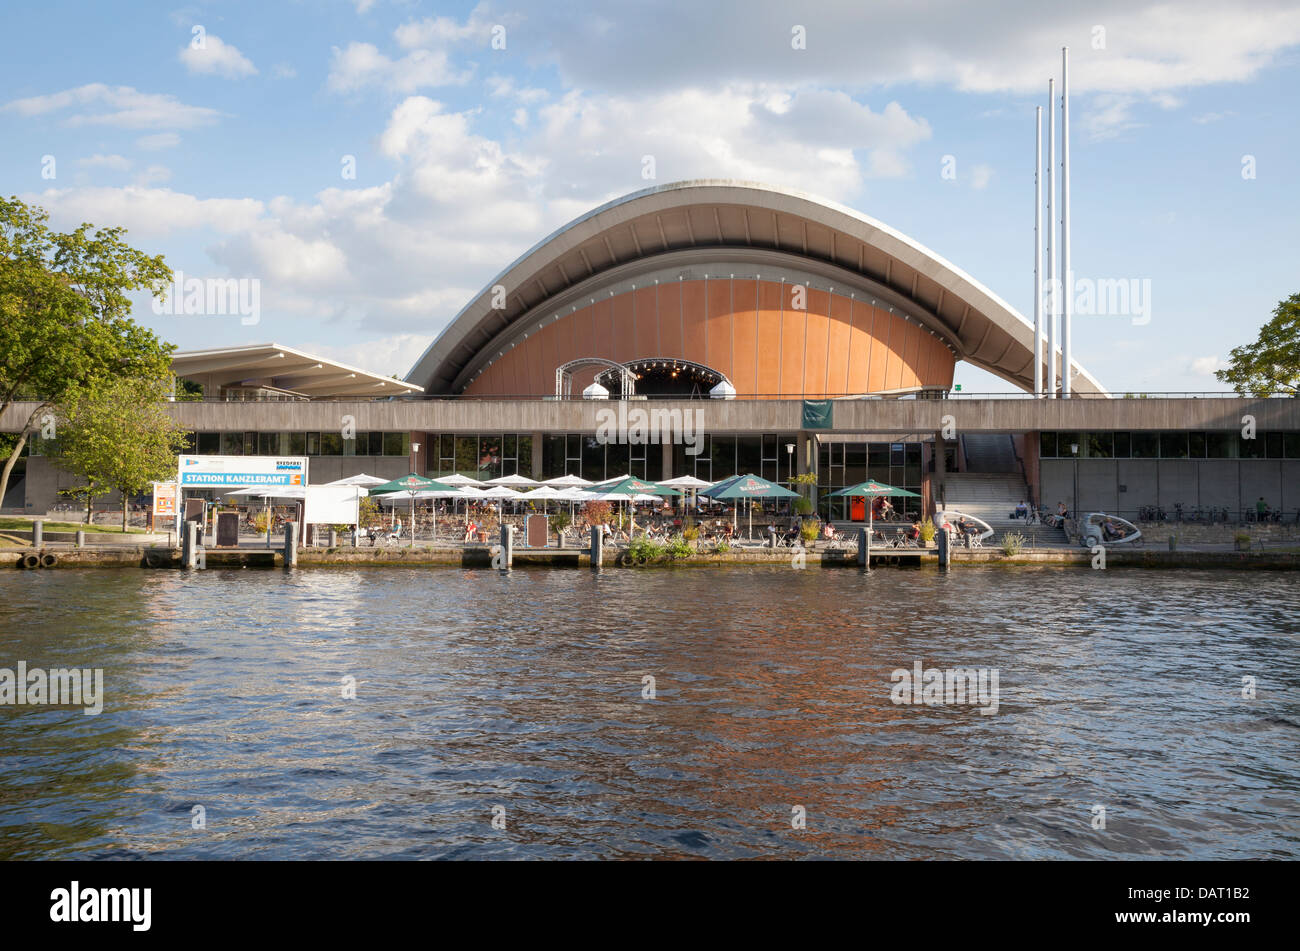 House of World Culture, Berlin, Germany - Stock Image